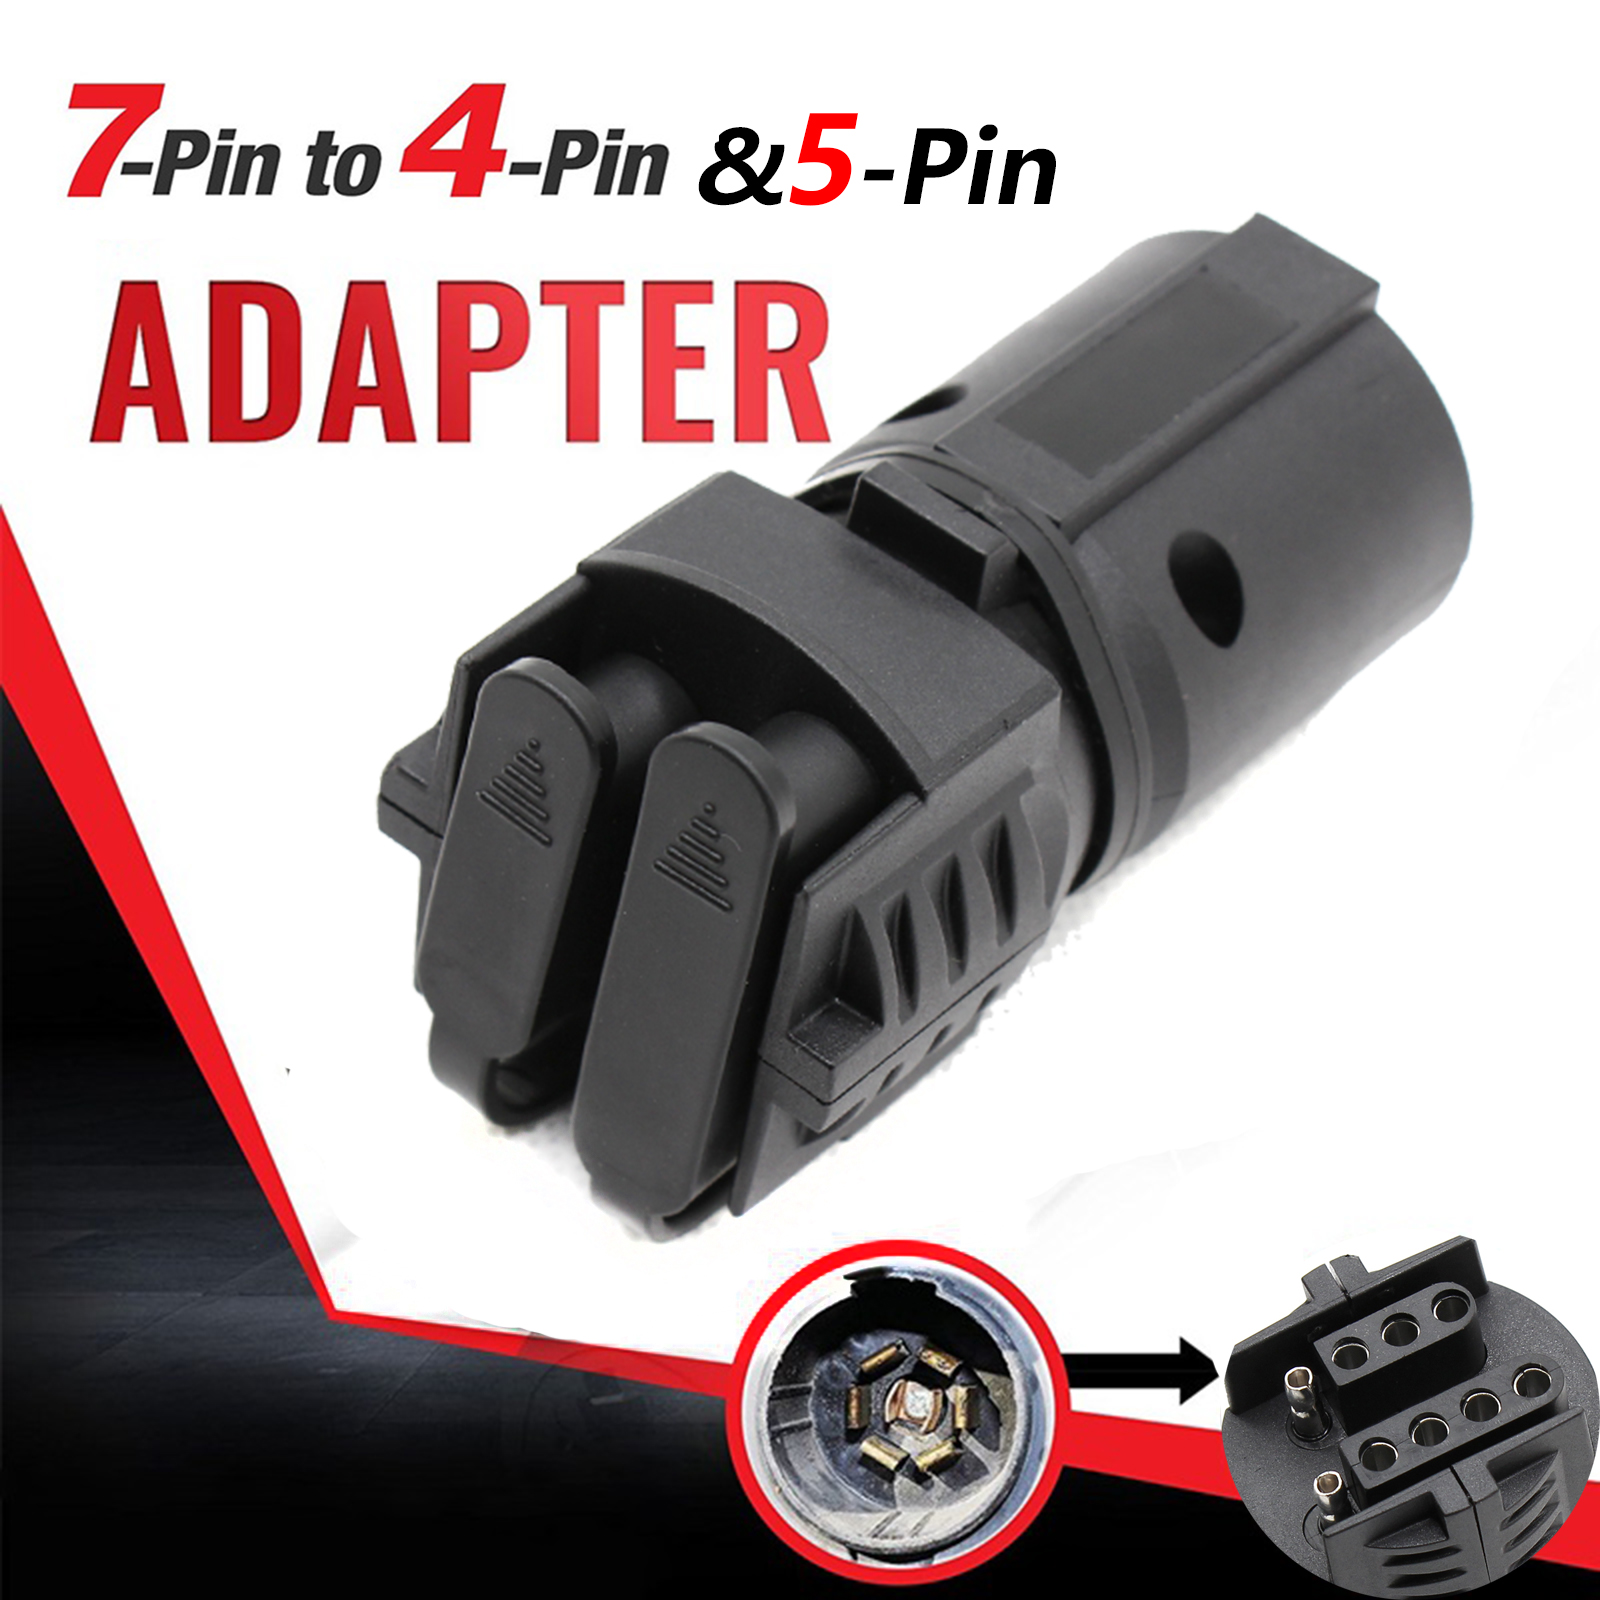 7 To 4 Way Flat 5 Pin Plug Trailer Light Adapter Connector